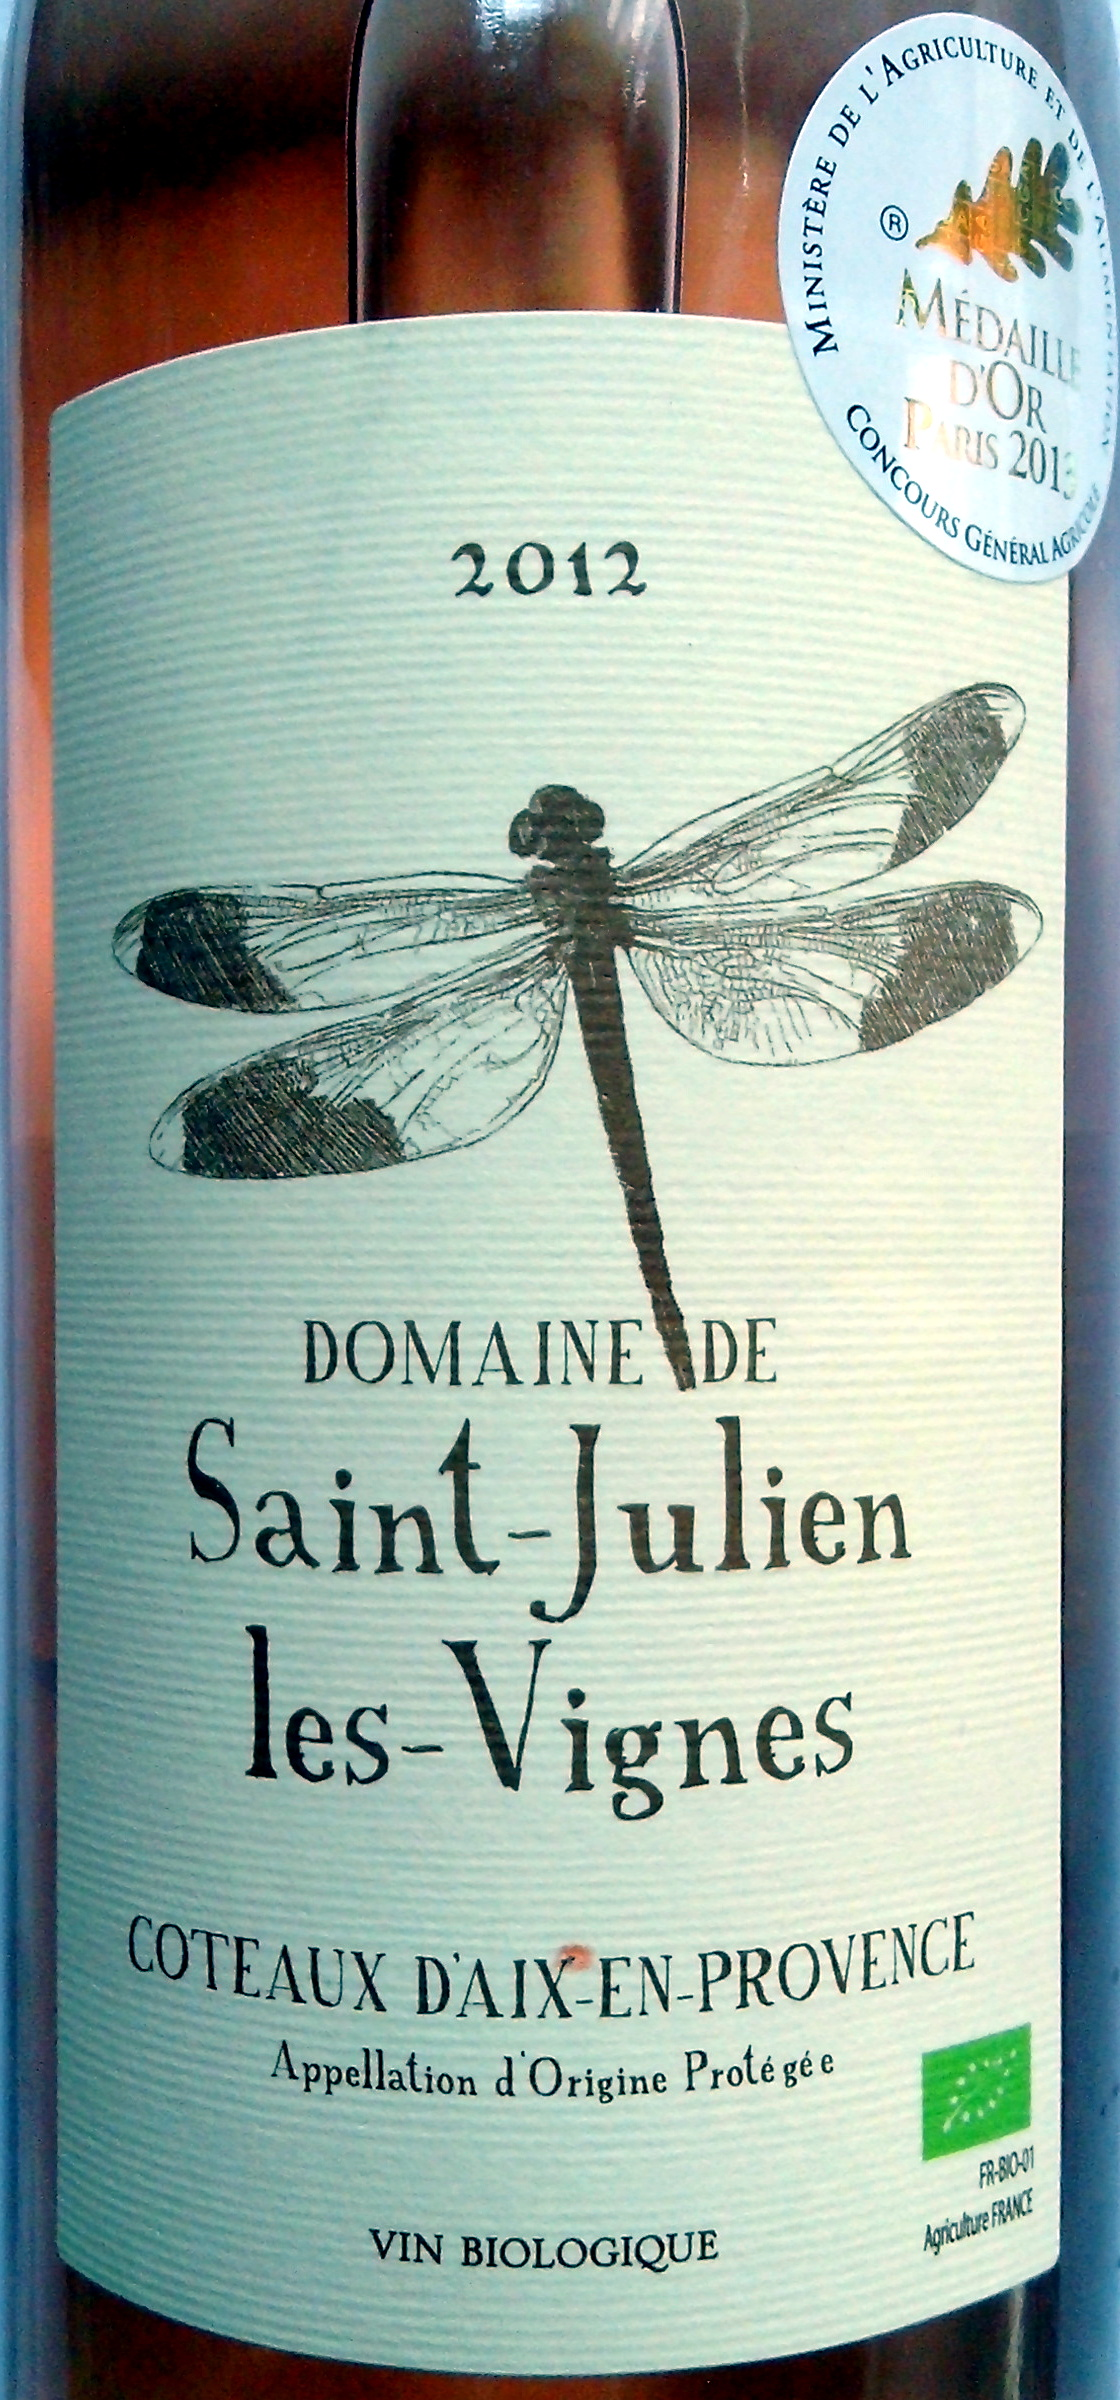 Saint-Julien les Vignes 2012 - Product - fr